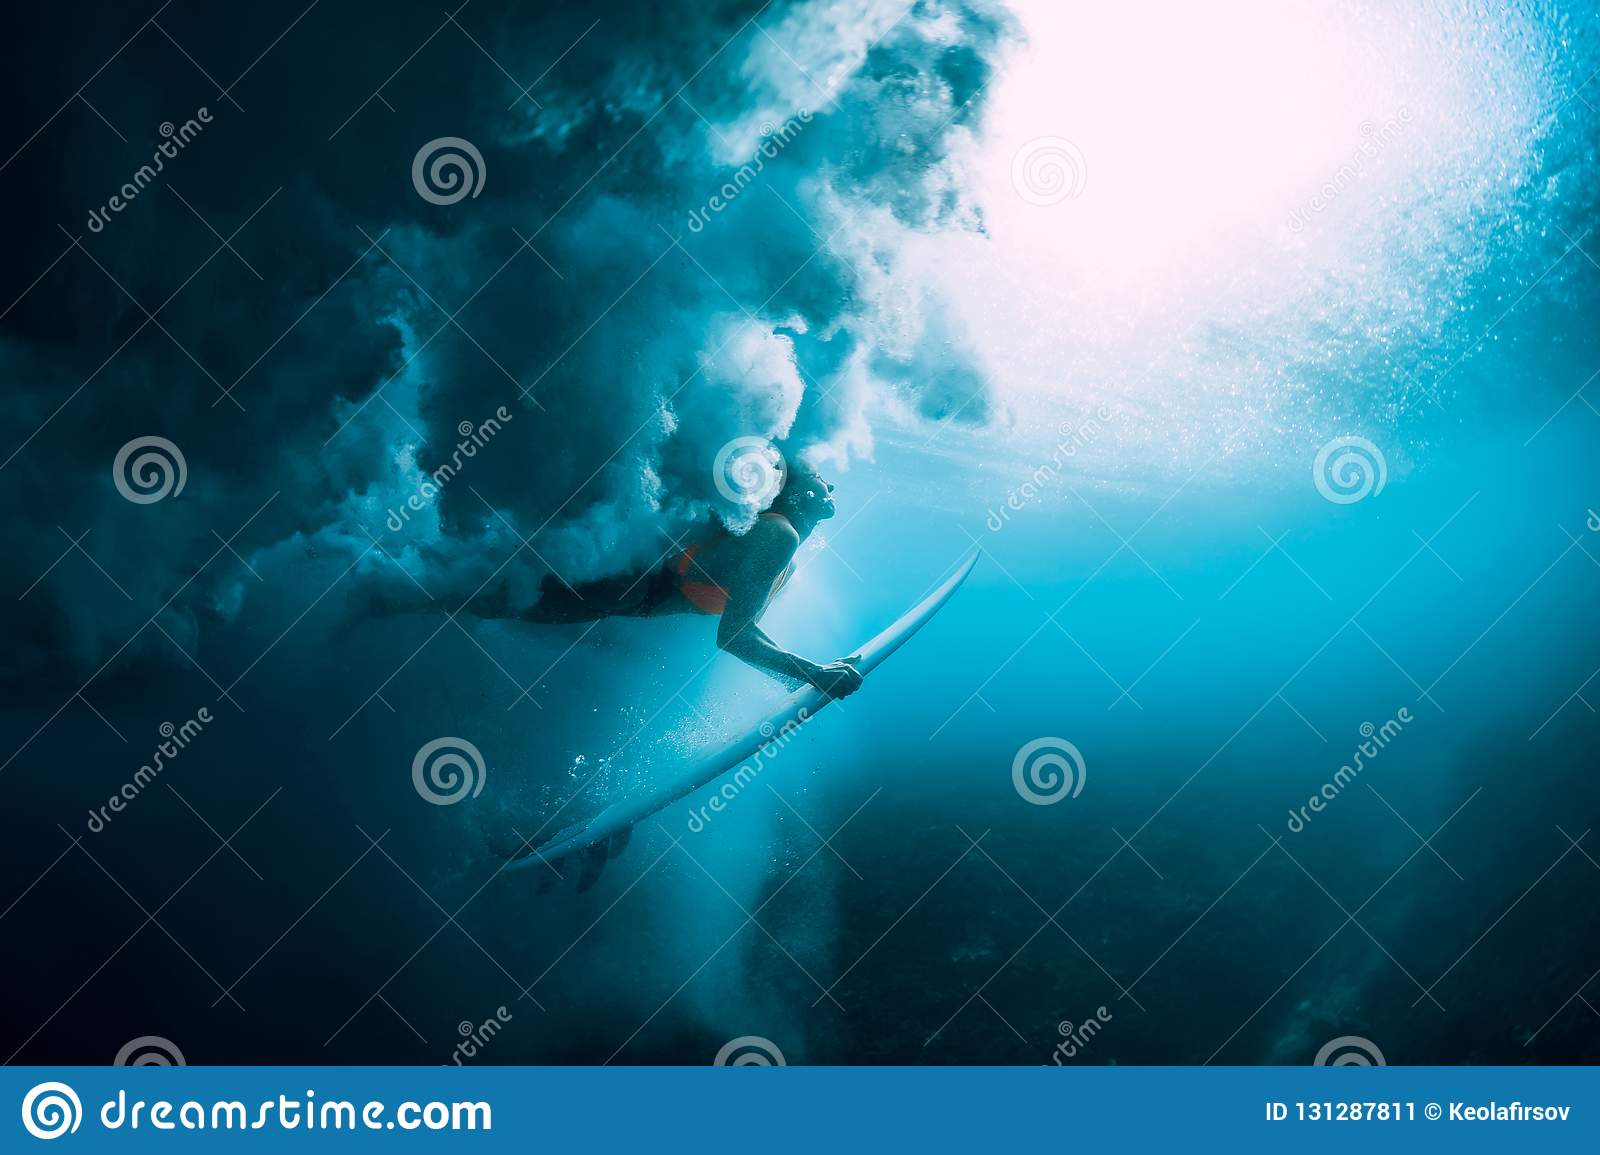 Surfer woman with surfboard dive underwater with under big wave.